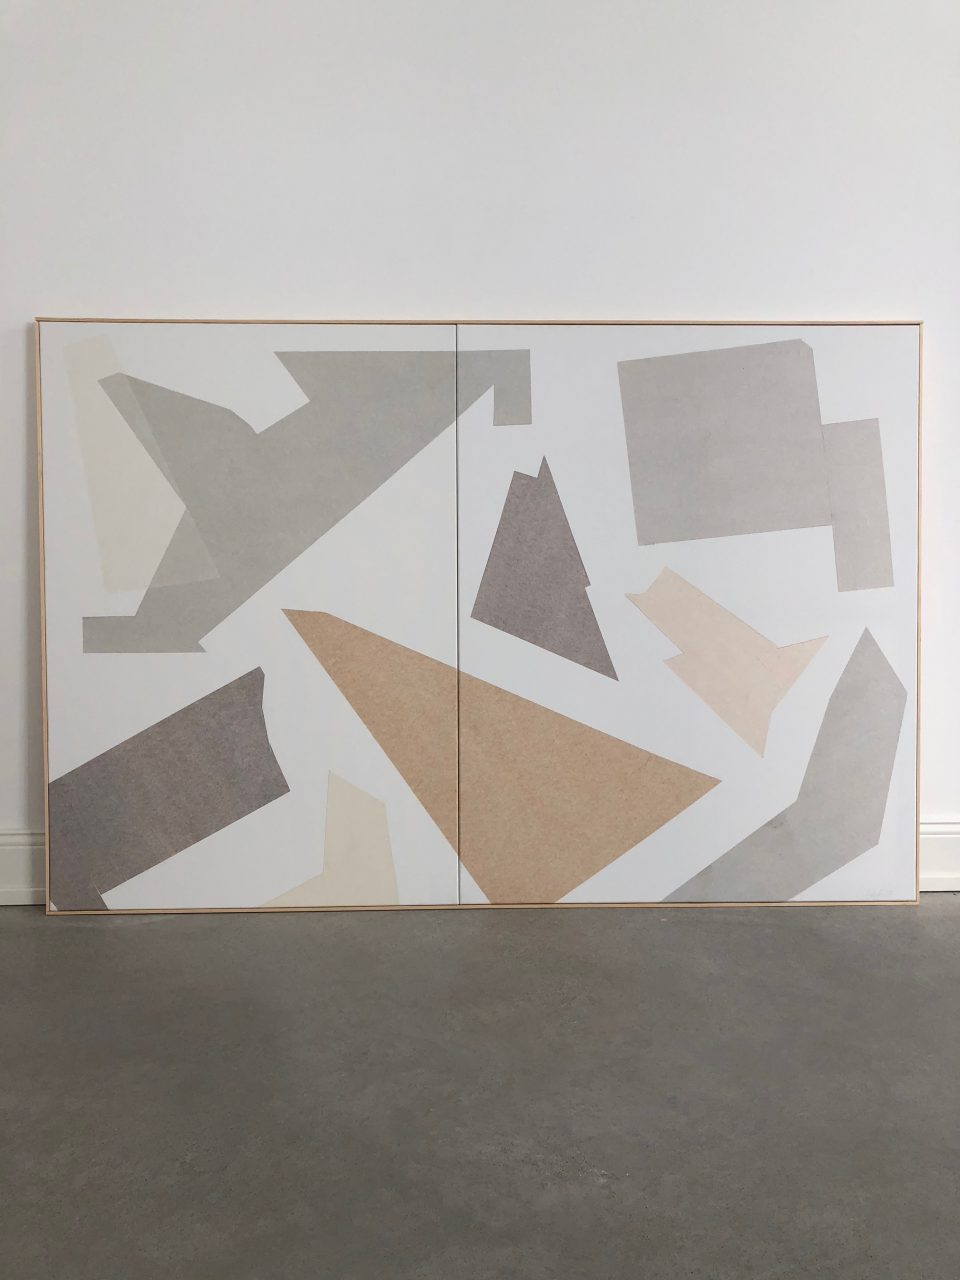 Puzzle 4, diptych, 100x160 cm, paper on canvas, 2018